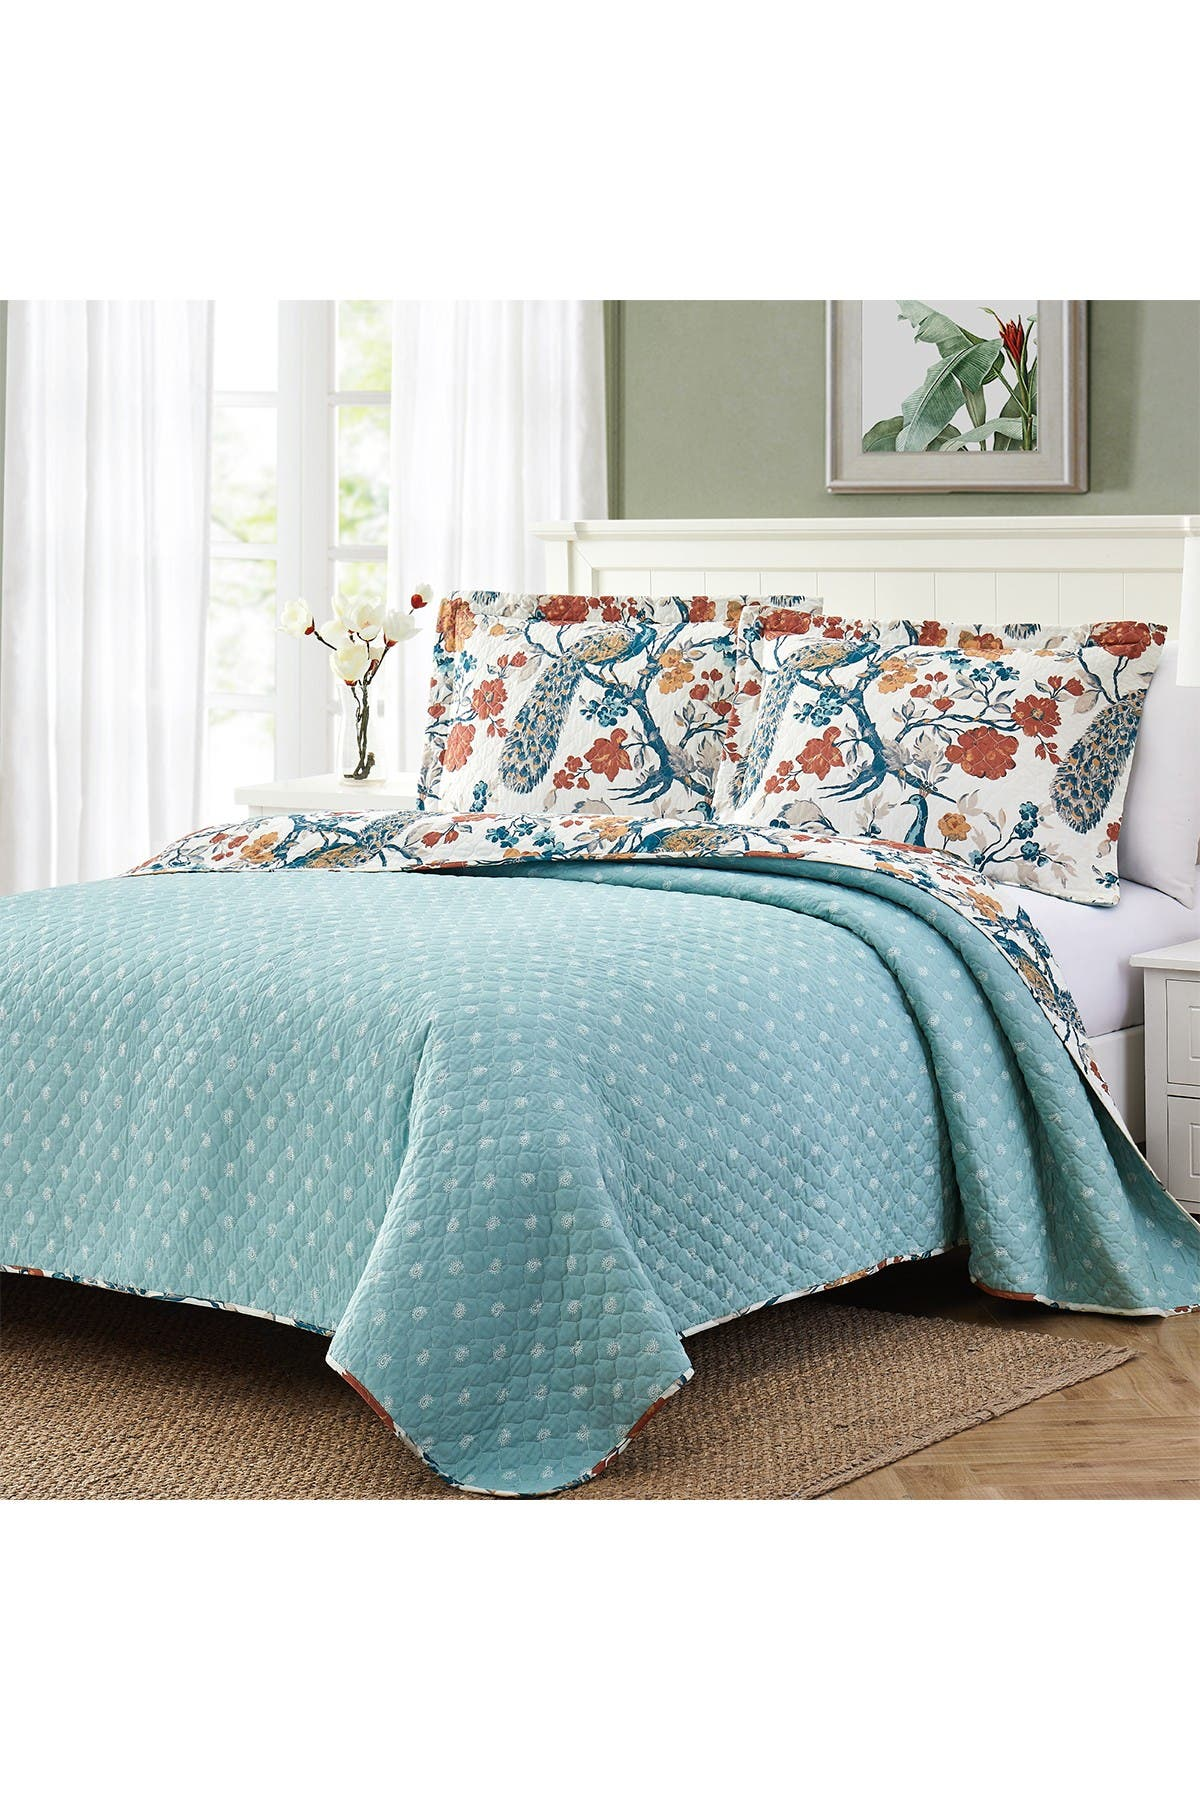 Image of Modern Threads 3-Piece Enzyme Washed Quilt Set Penelope - Queen